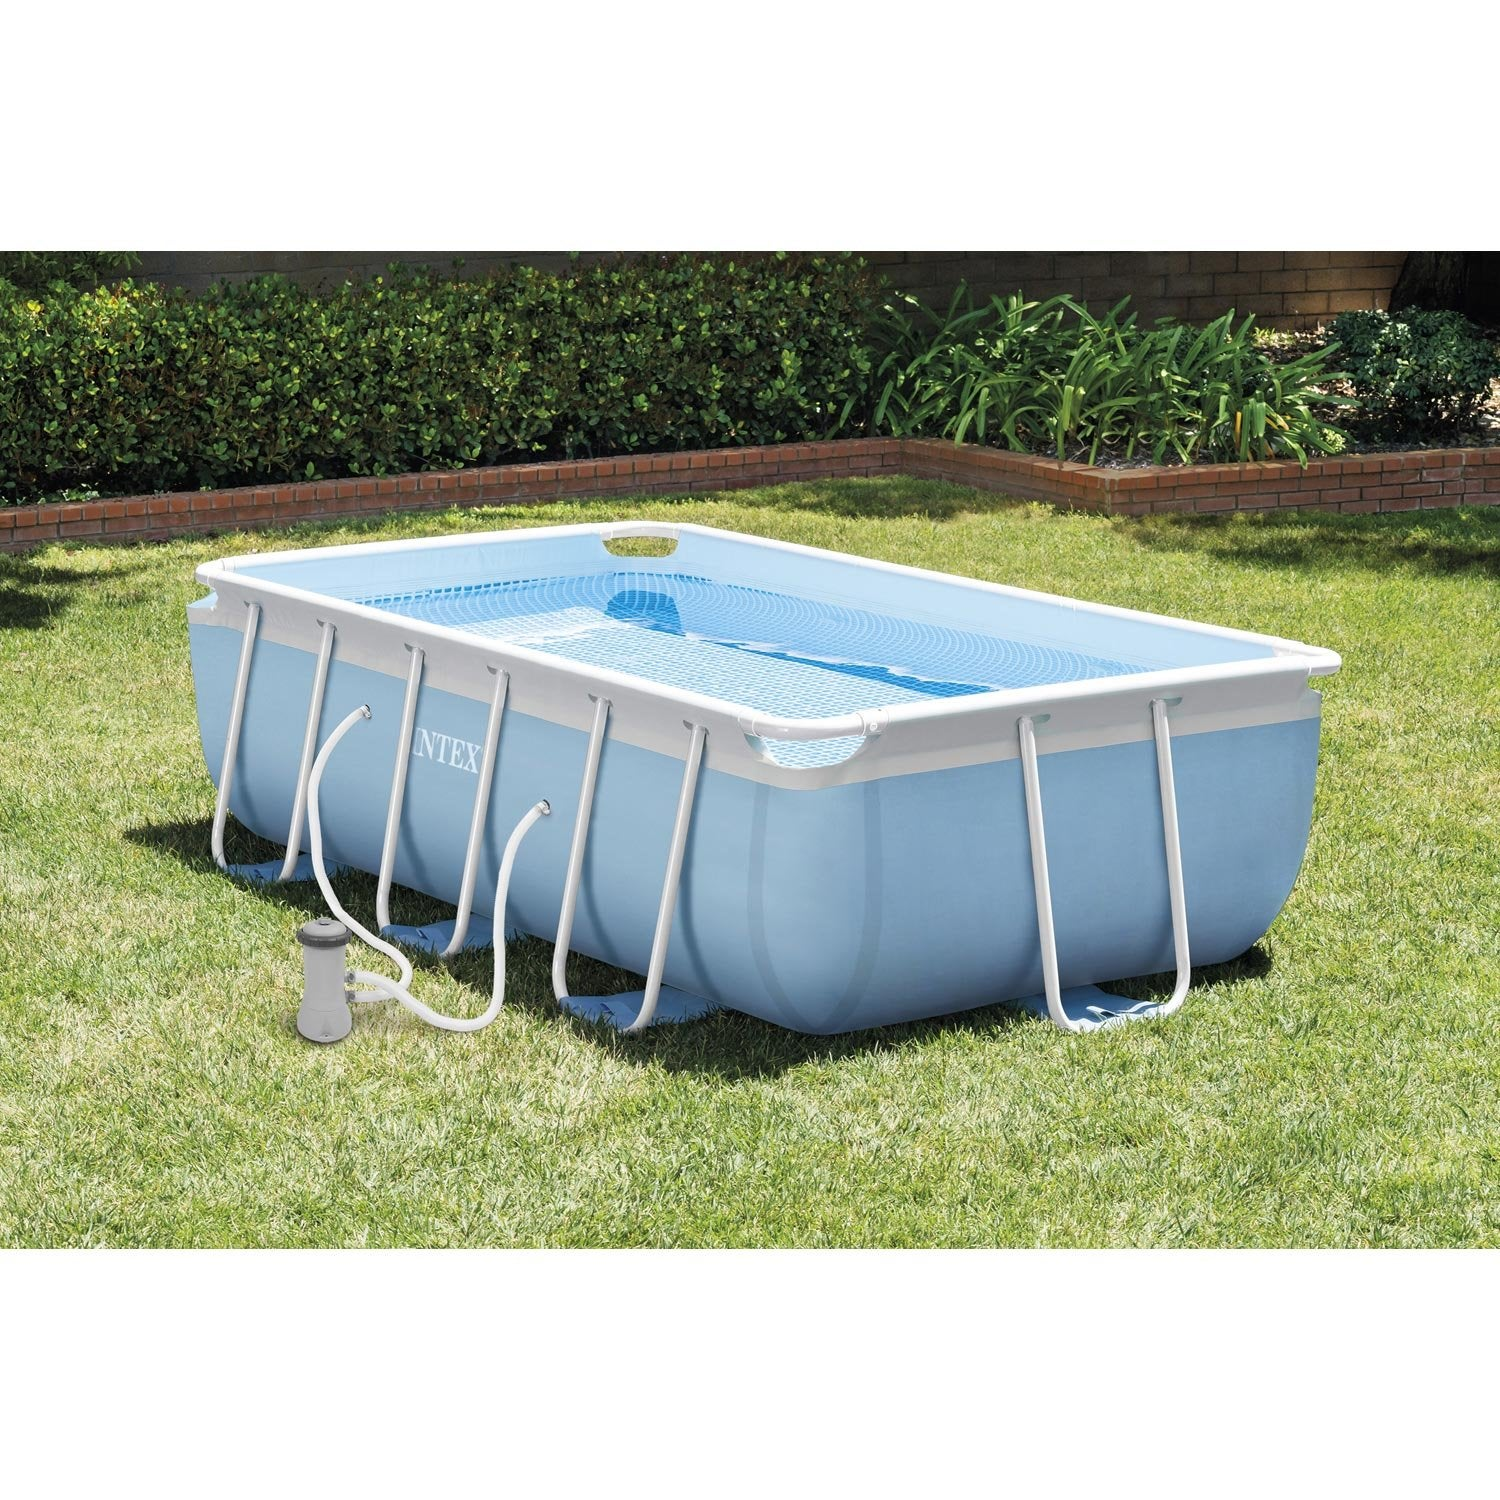 Piscine hors sol autoportante tubulaire intex l 3 4 x l 2 for Petite piscine tubulaire rectangulaire